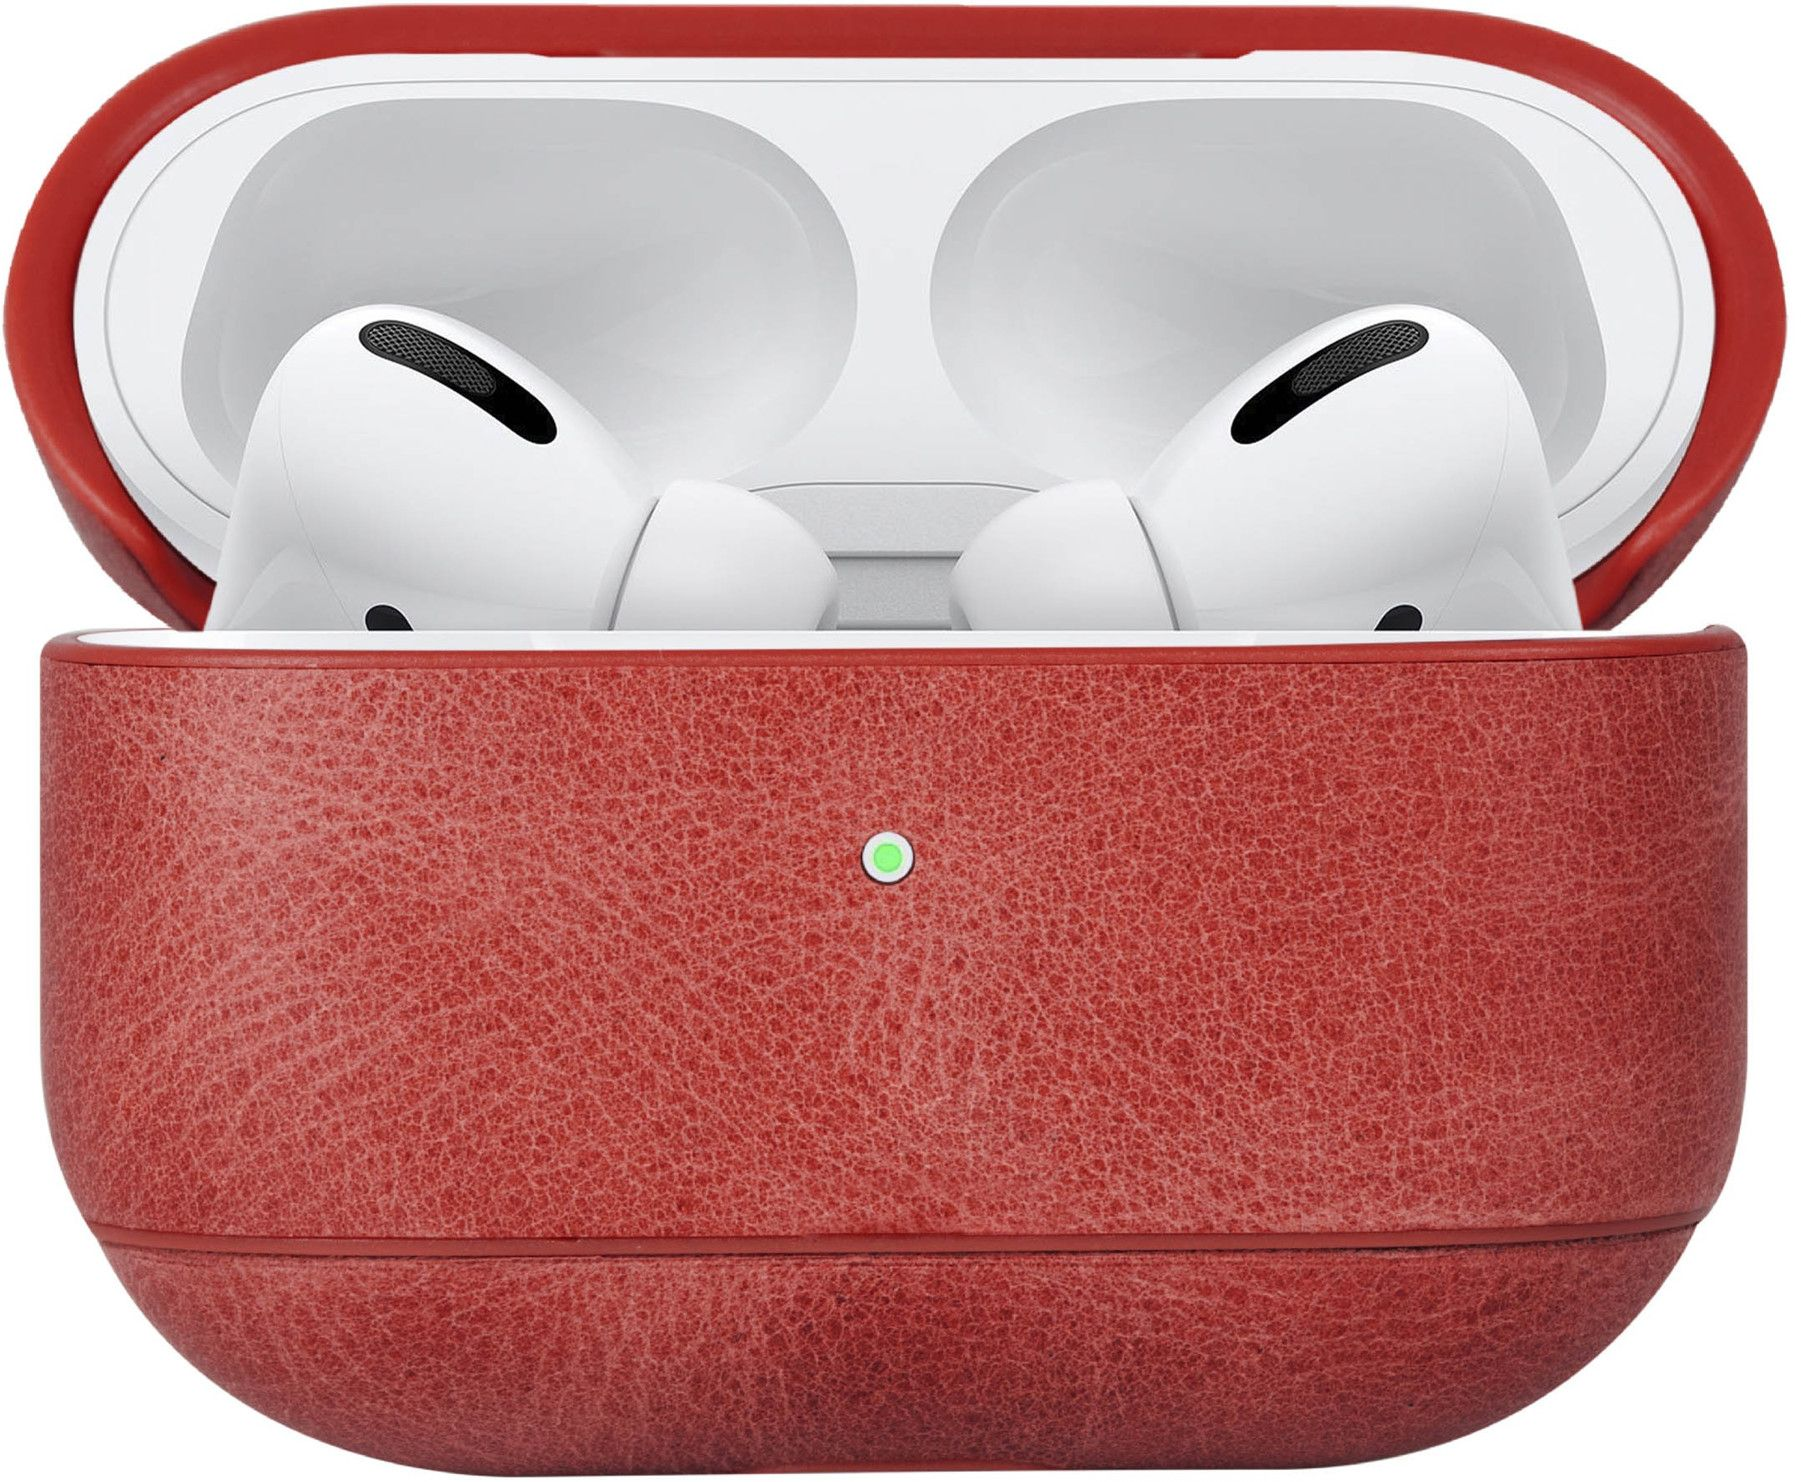 Krusell Sunne AirPods Pro Case for AirPods Pro